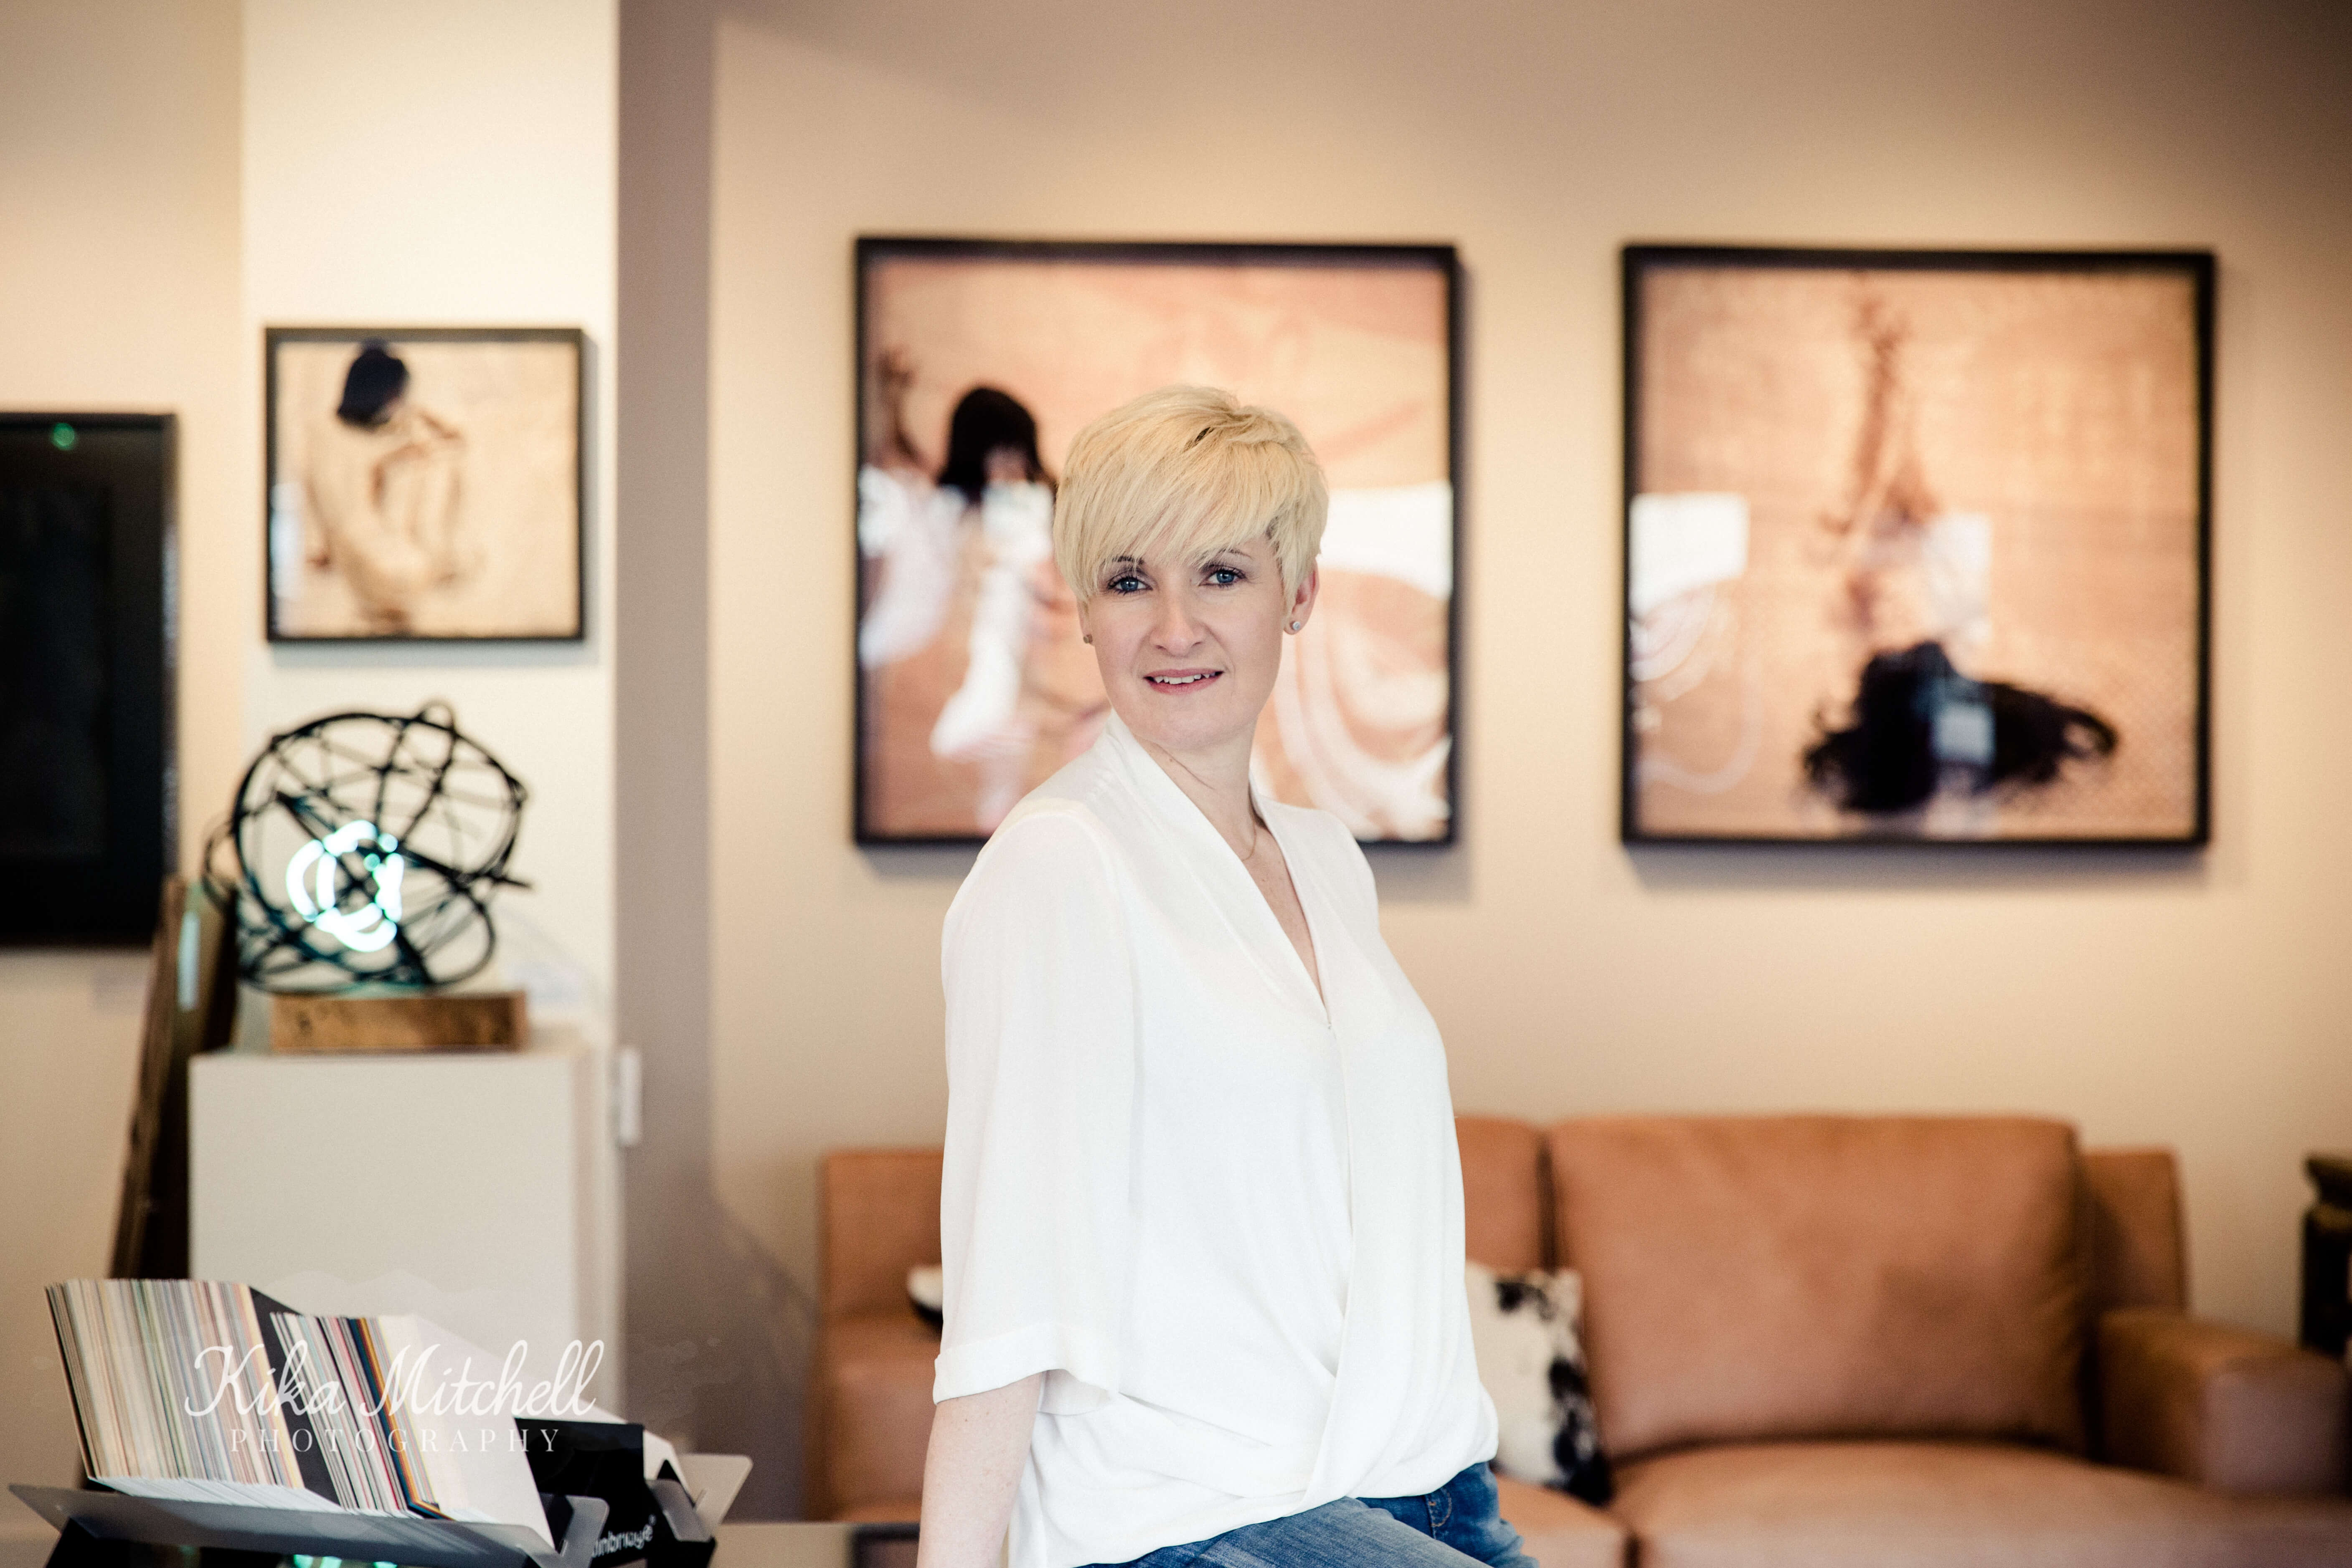 Turner Barnes gallery Shenfield, Soo Turner owner shot by Chelmsford Photographer Kika Mitchell Photography